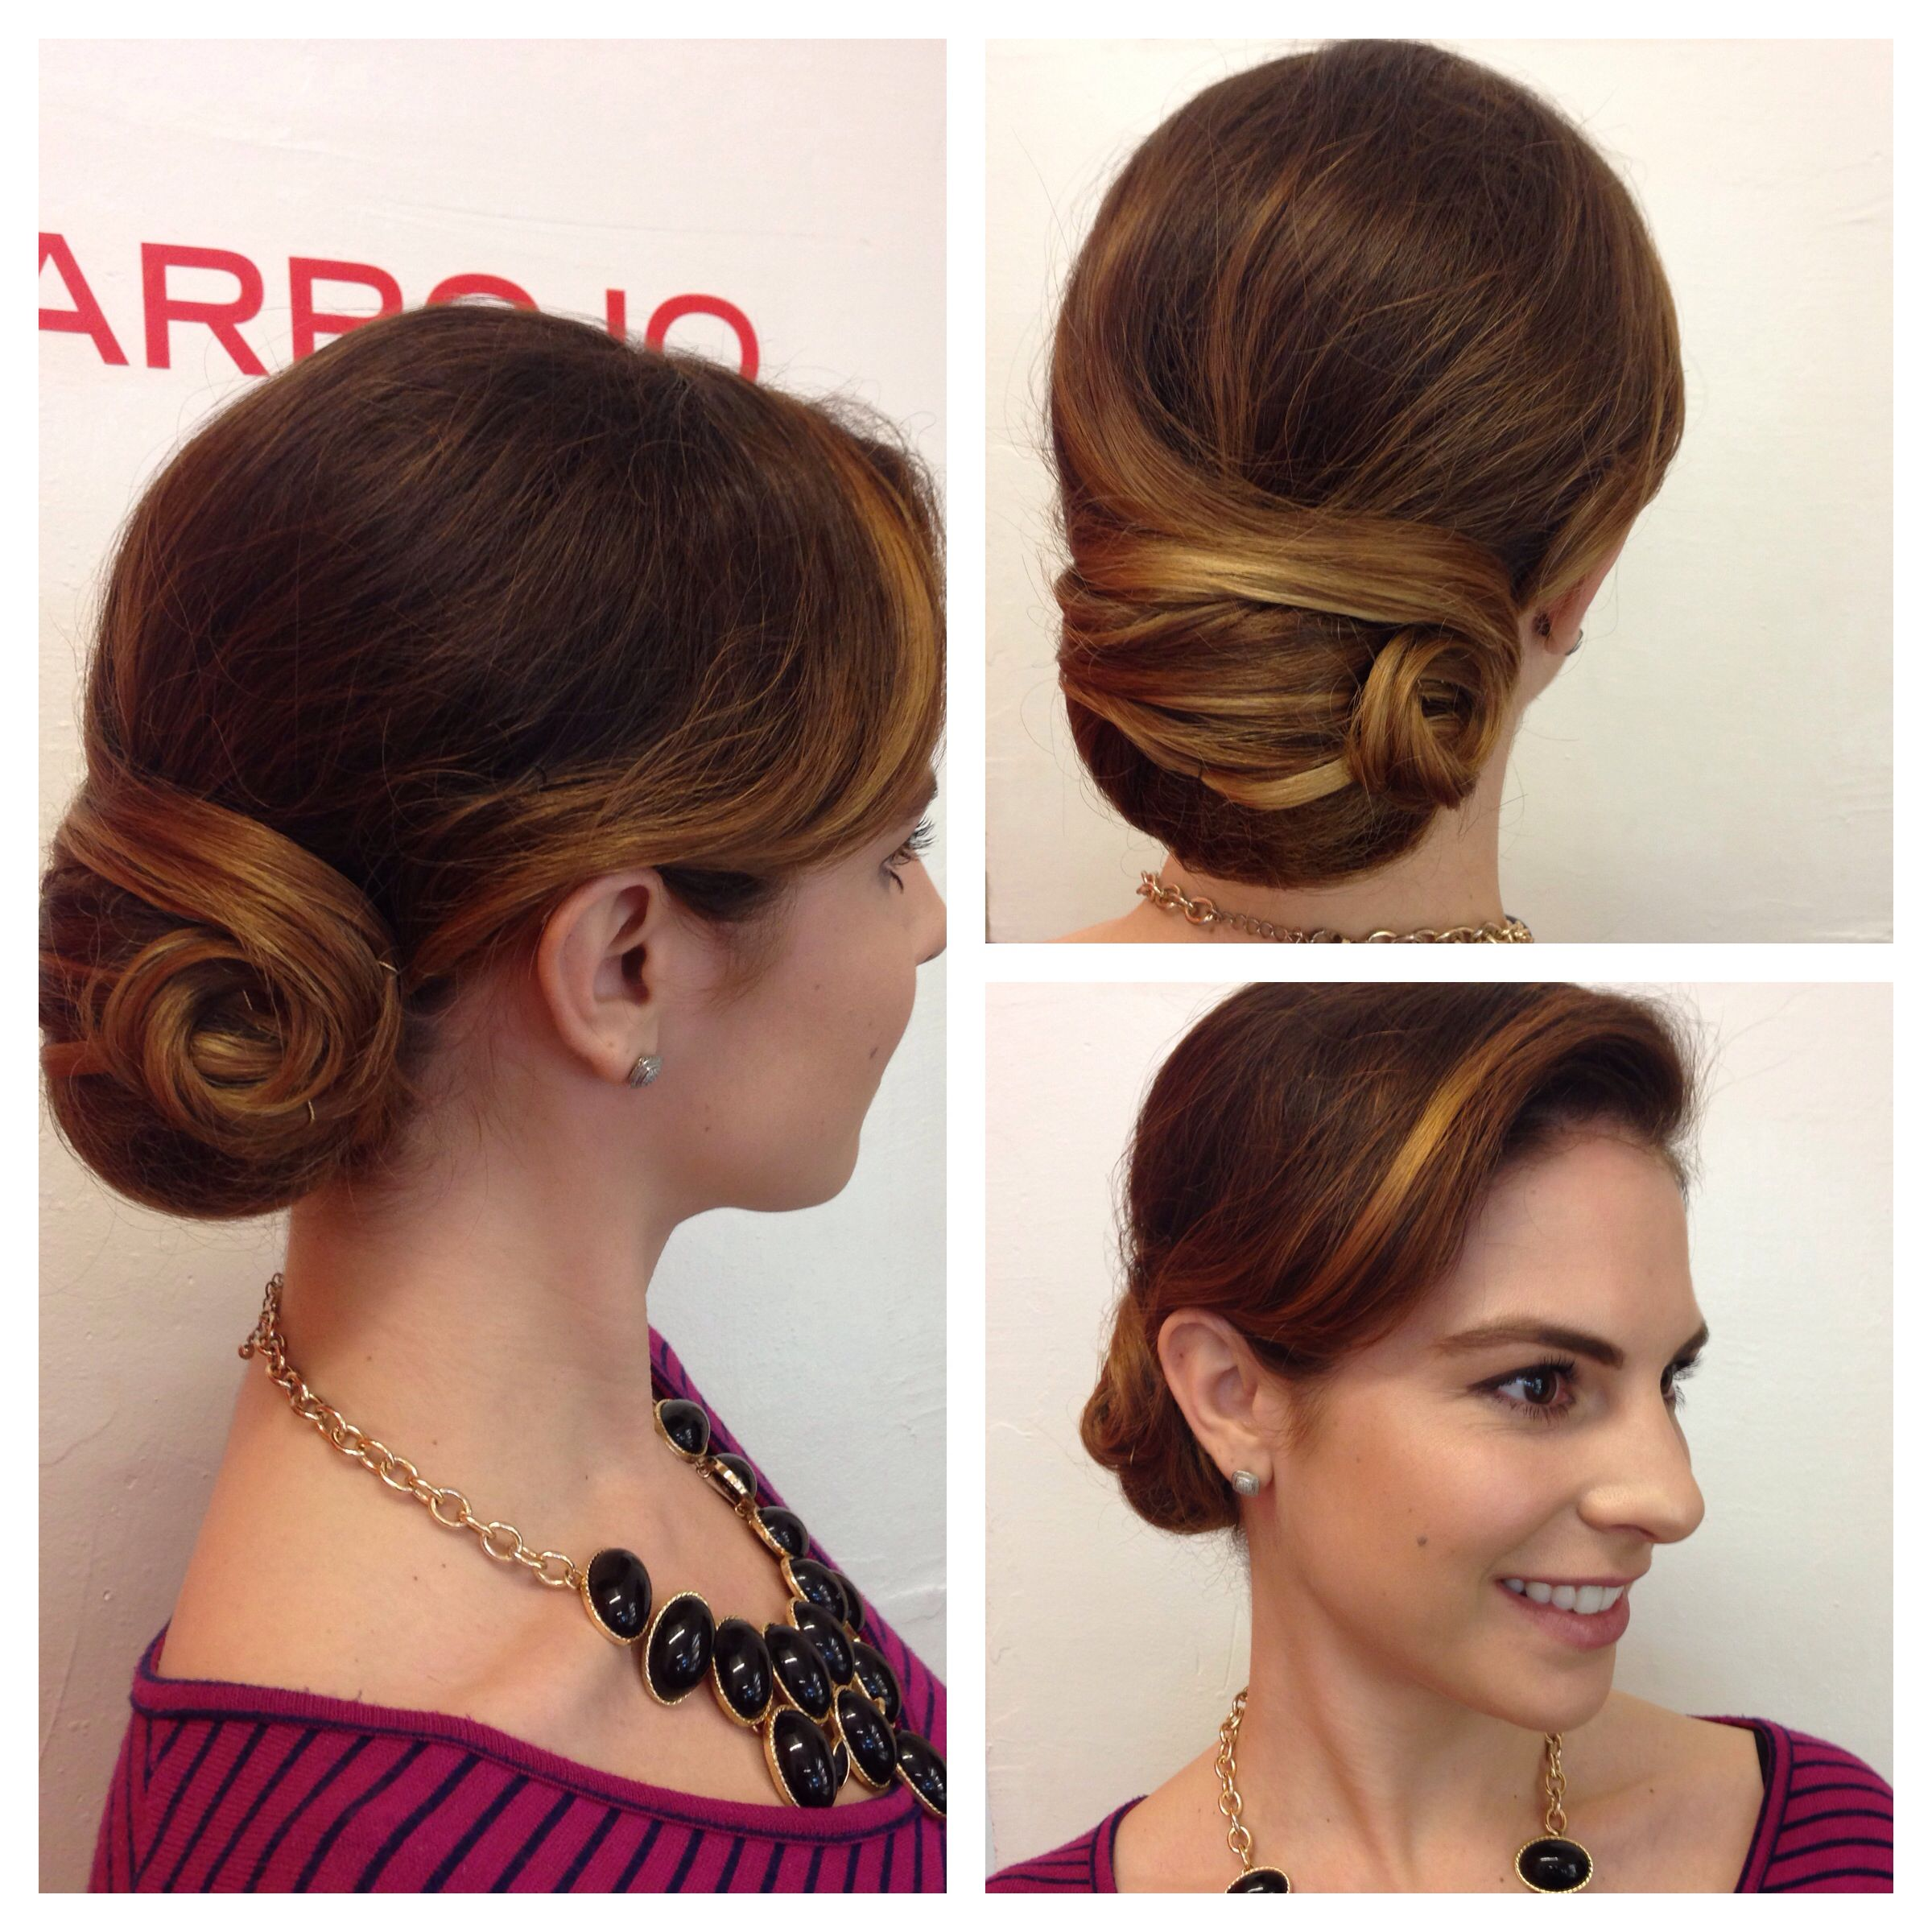 Classic Chignon Wedding Hairstyles: Sleek And Smooth Updo, Classic Bun, Low Bun, Finger Waves